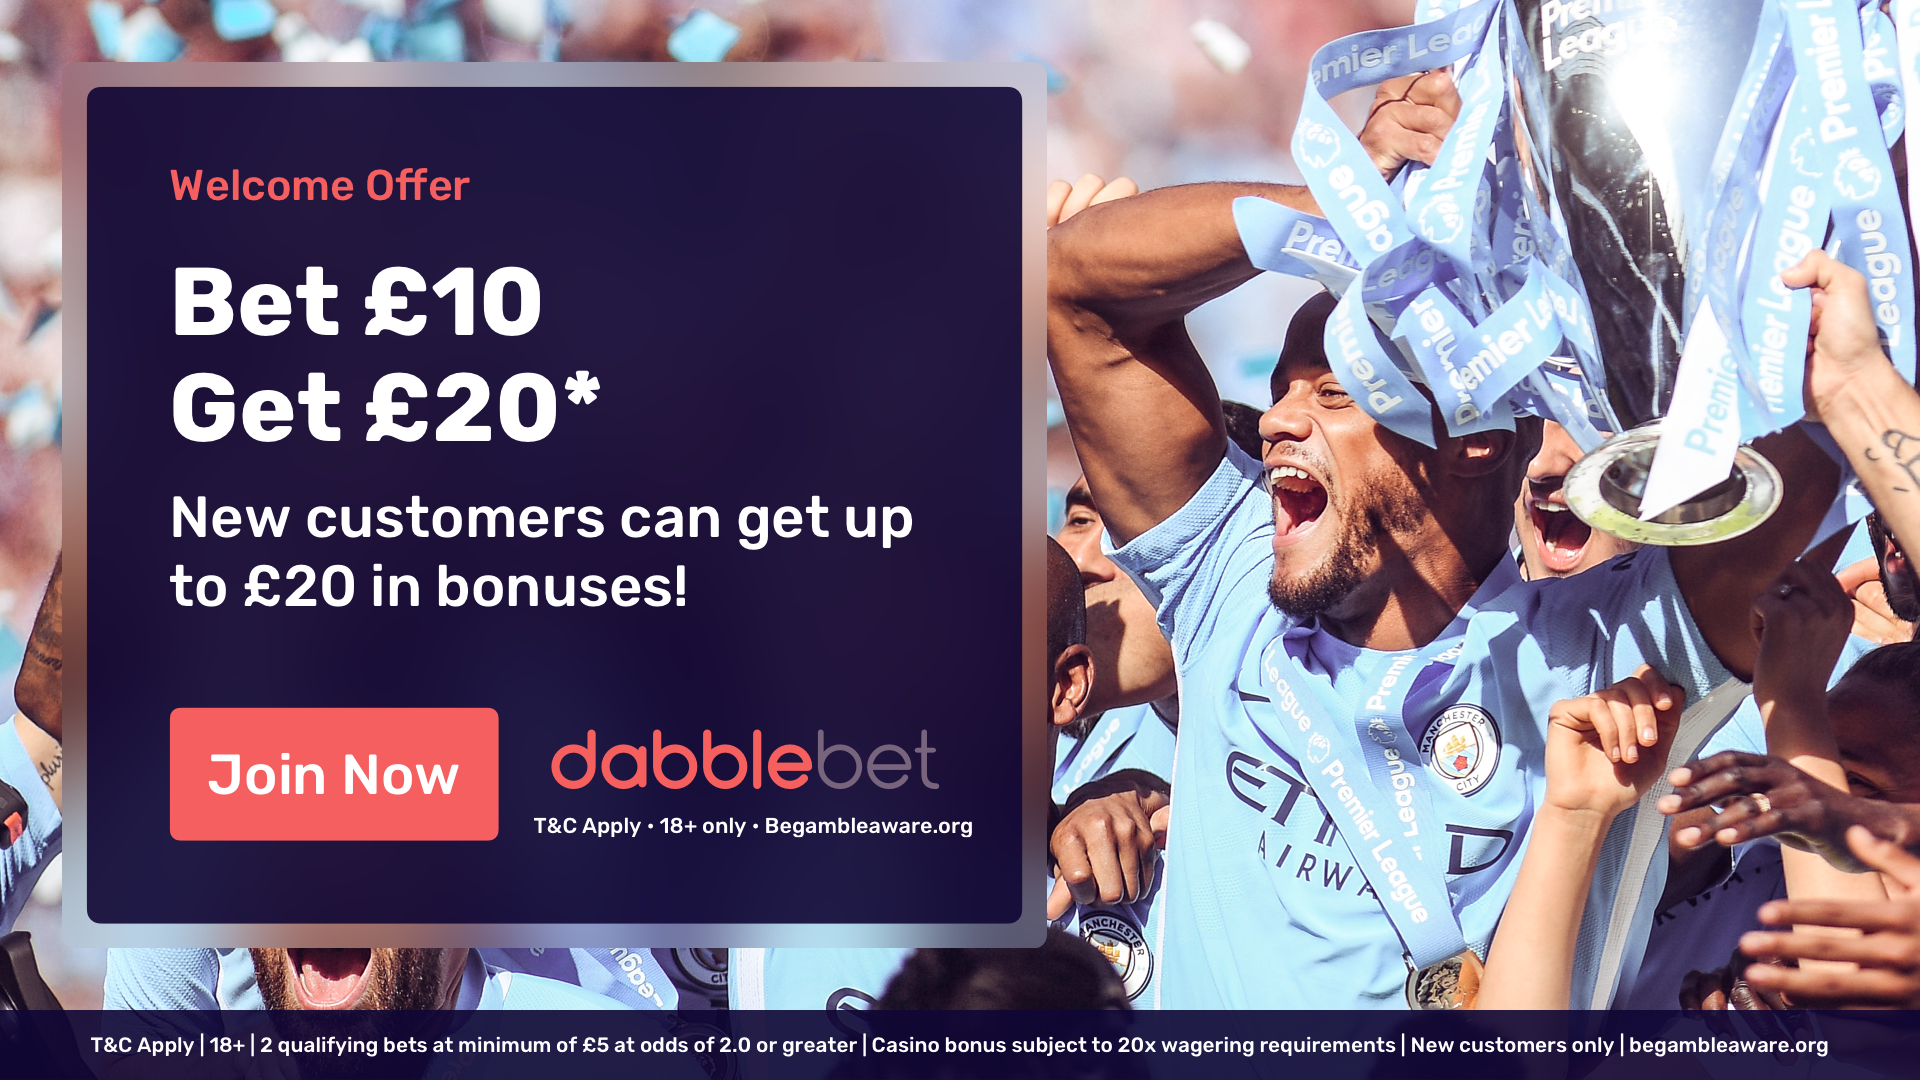 dabblebet new customer offer in article